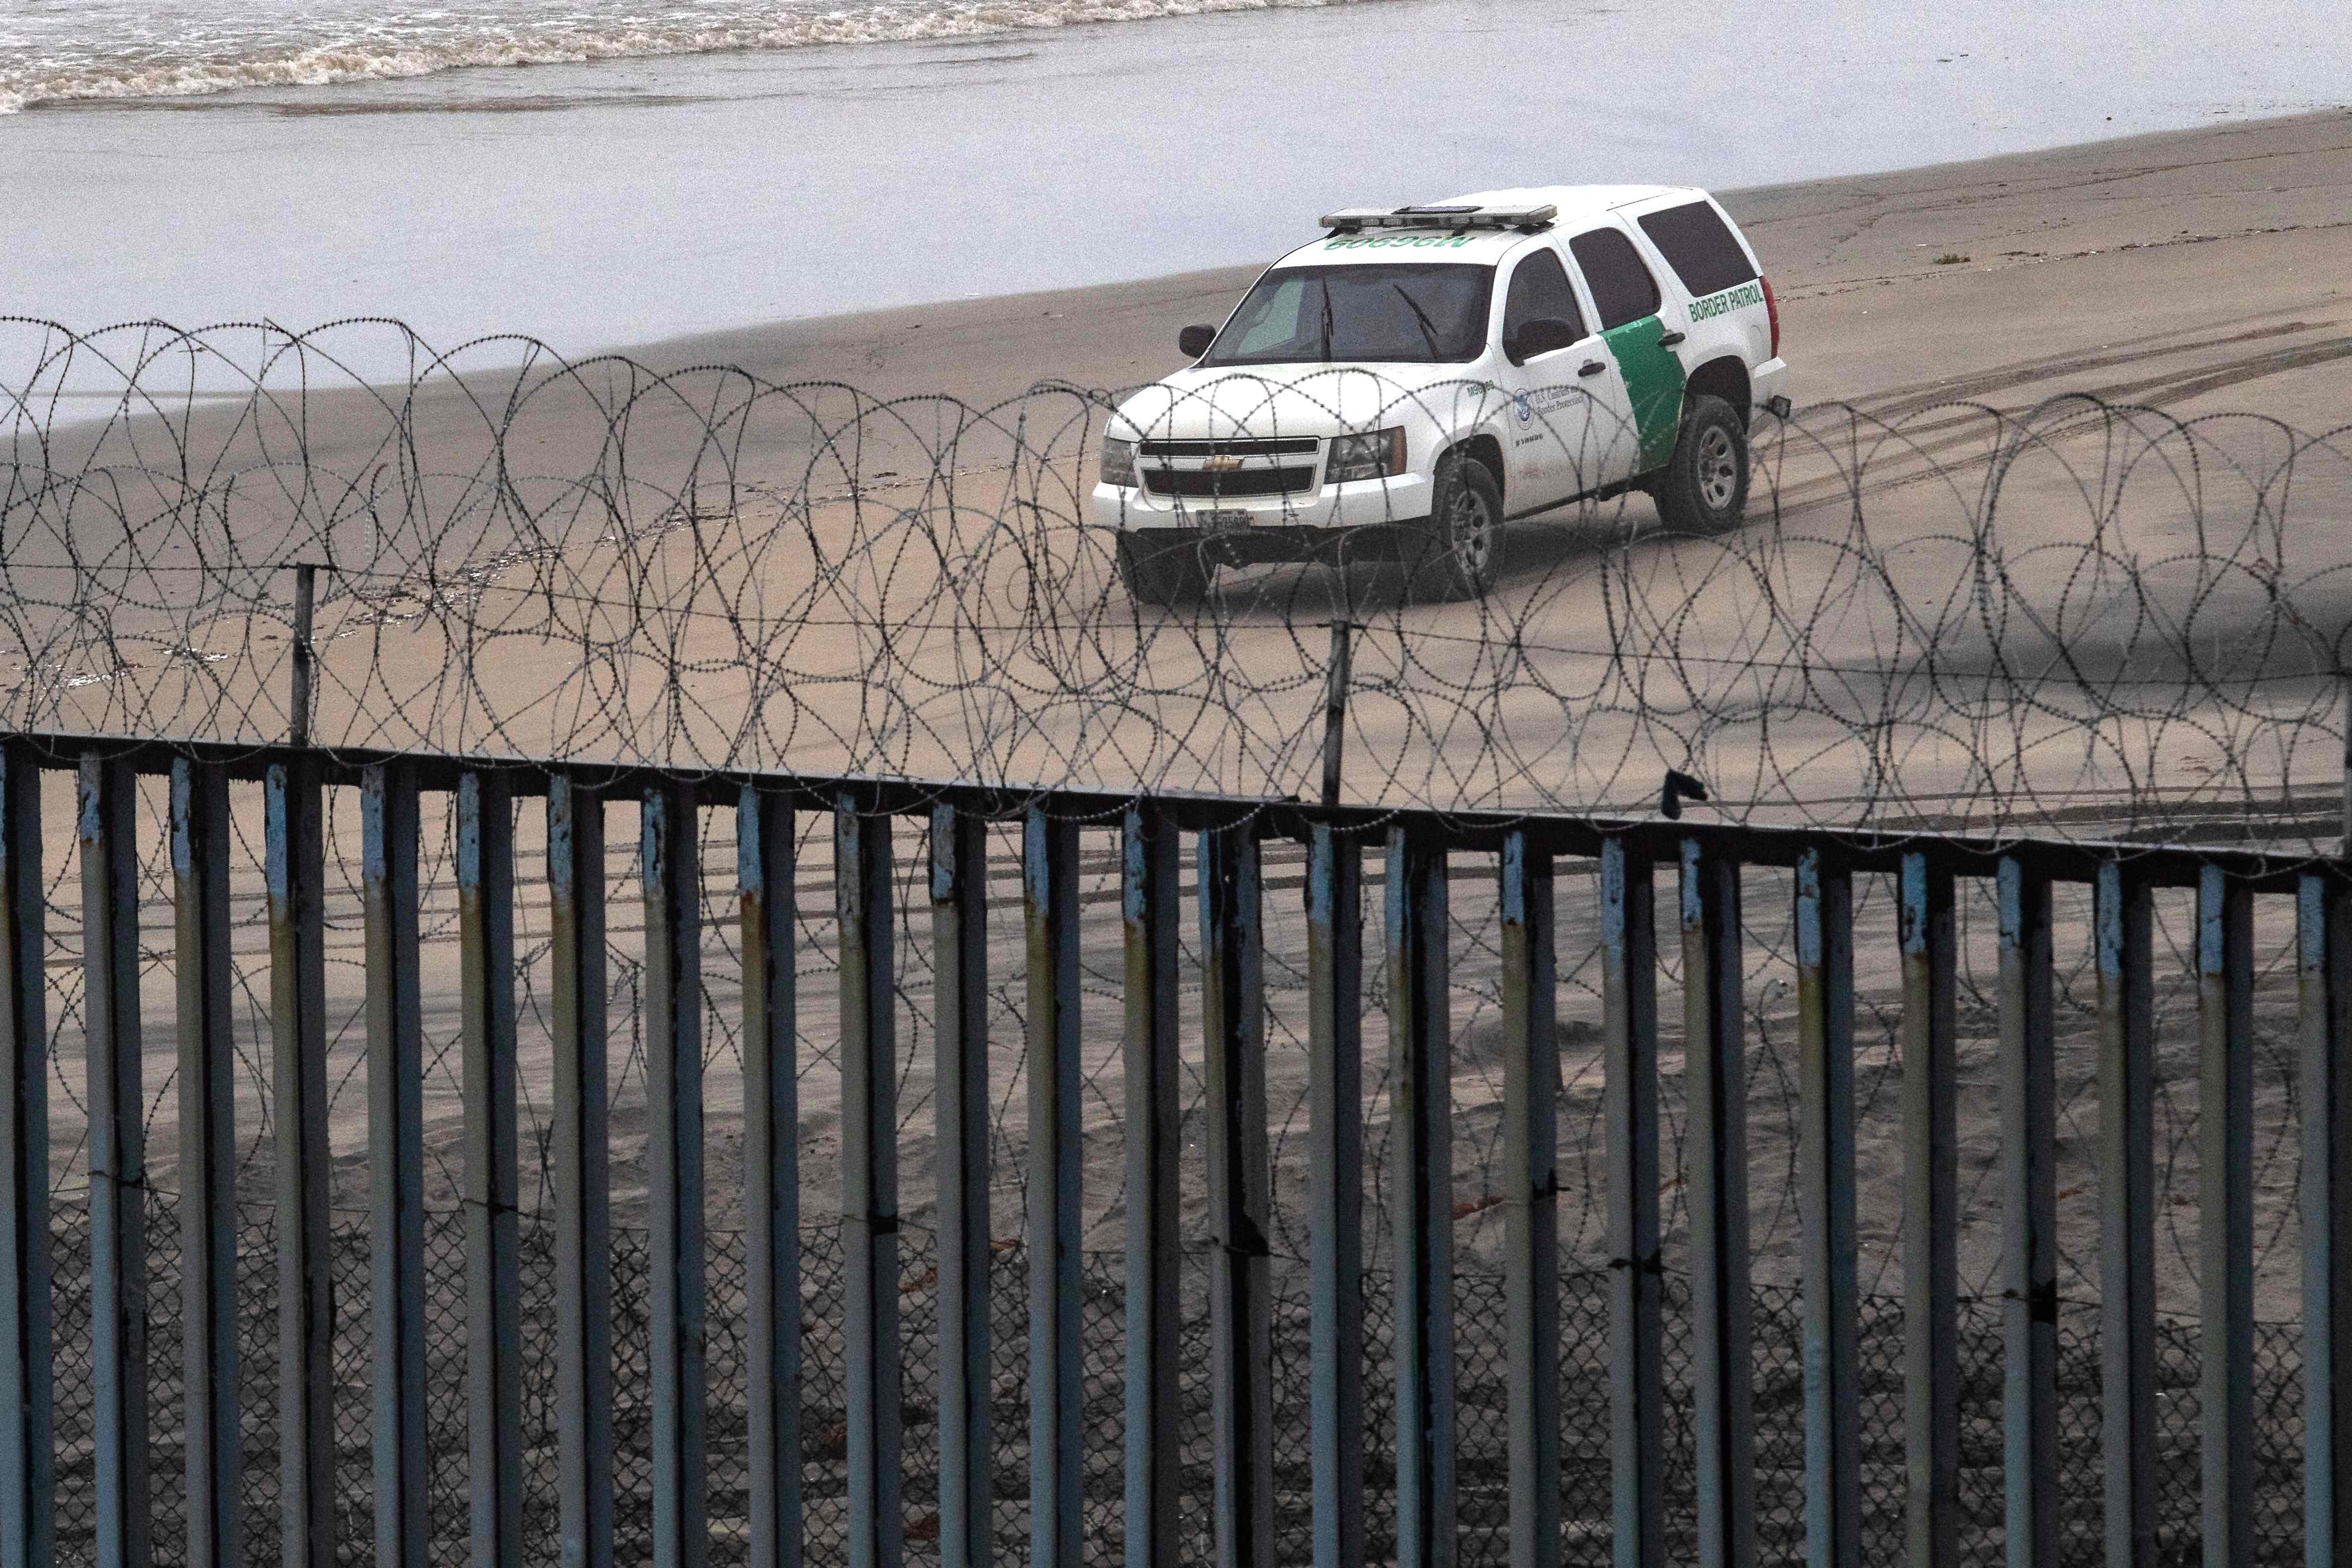 A Border Patrol unit remains near a section of reinforced US-Mexico border fence seen from Tijuana, Baja California state, Mexico, on February 14, 2019. - US President Donald Trump will sign a spending bill to avert a government shutdown but will also issue an emergency declaration to fund his controversial border wall, the White House and lawmakers said Thursday. (Photo by Guillermo Arias / AFP)